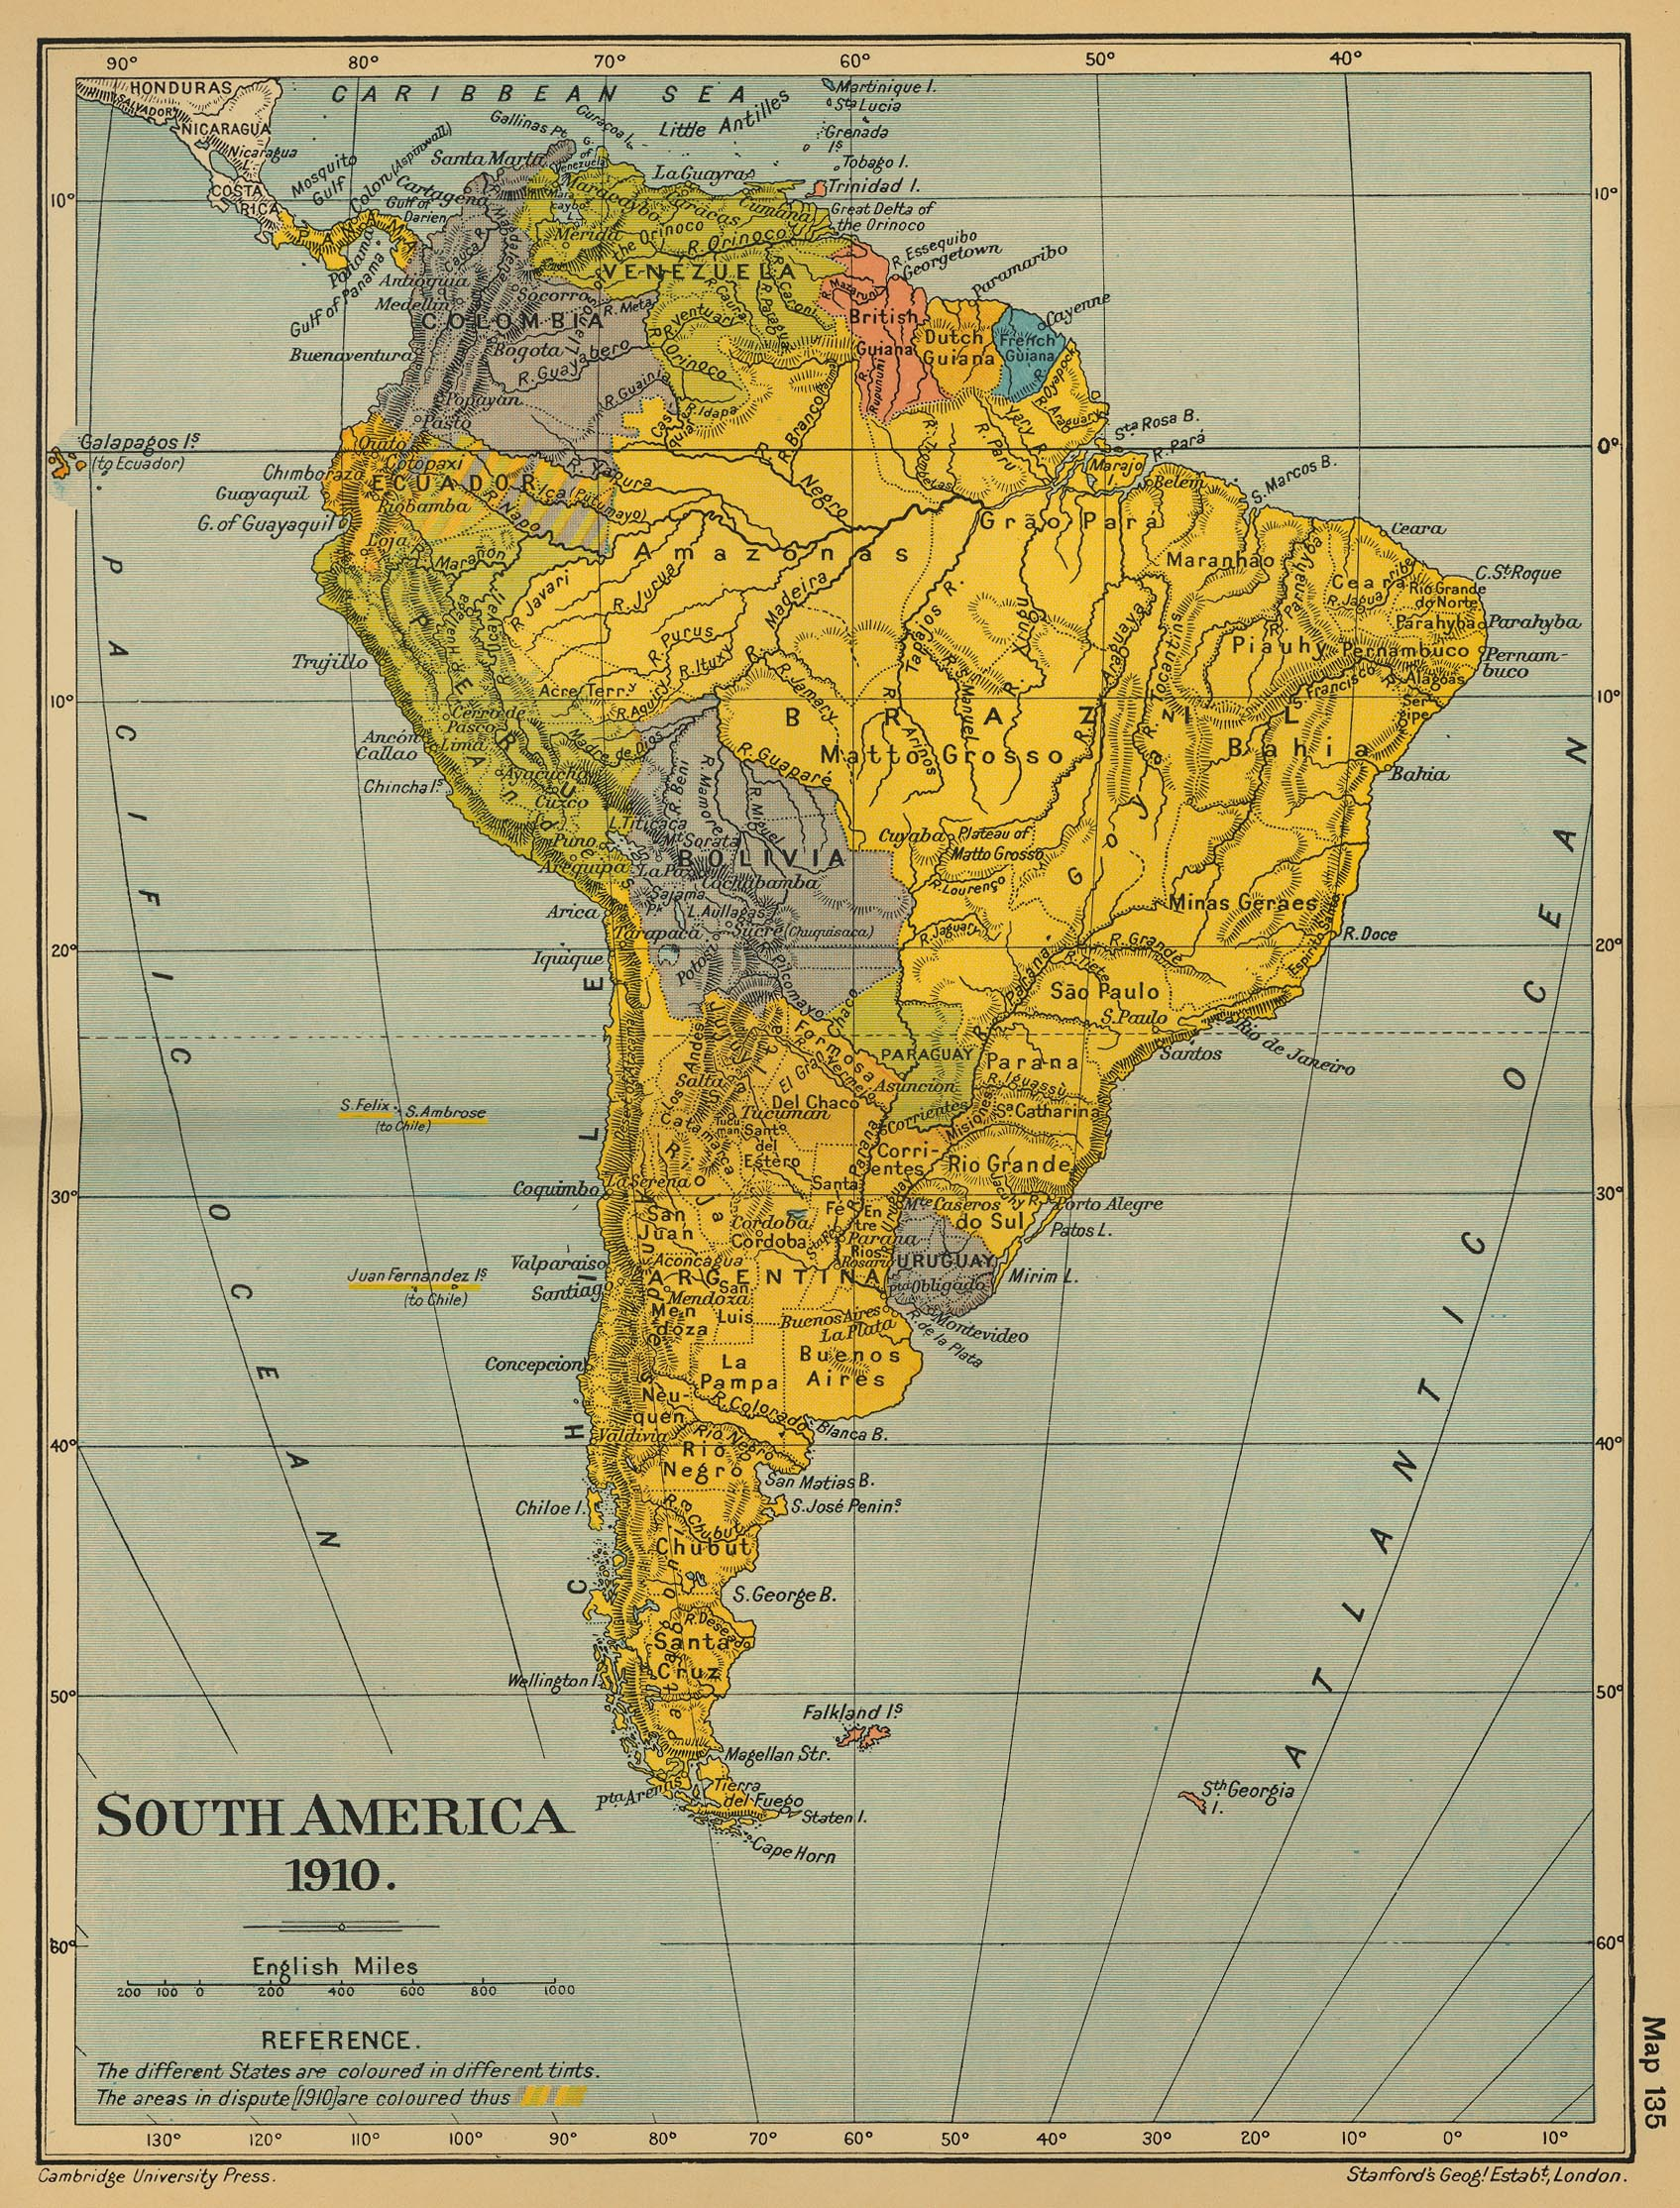 Of South America - S america map